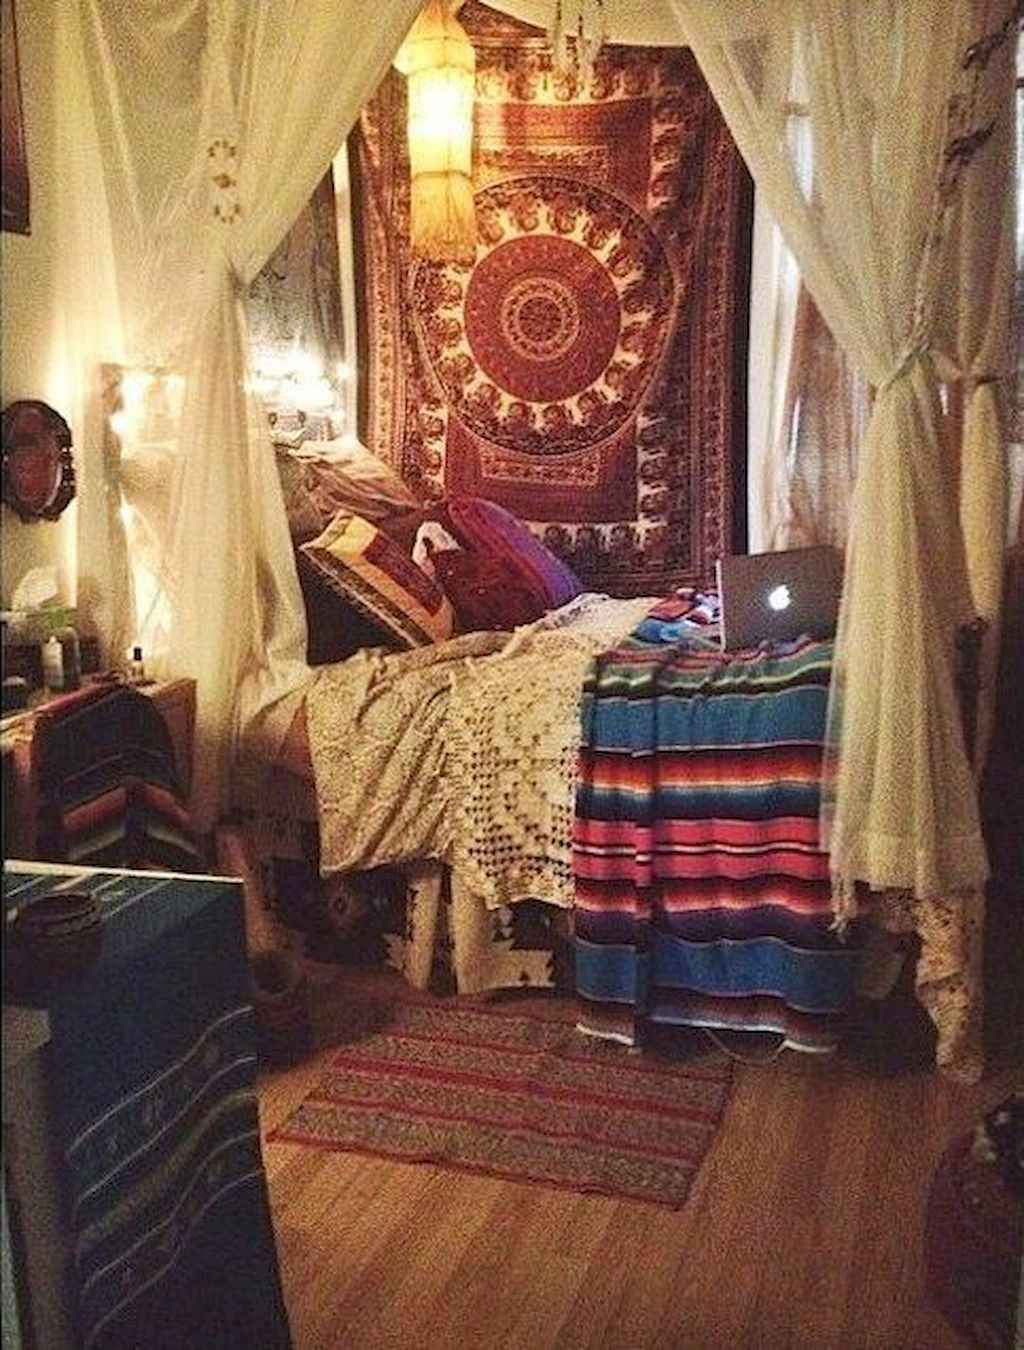 Bohemian style modern bedroom ideas (41 images